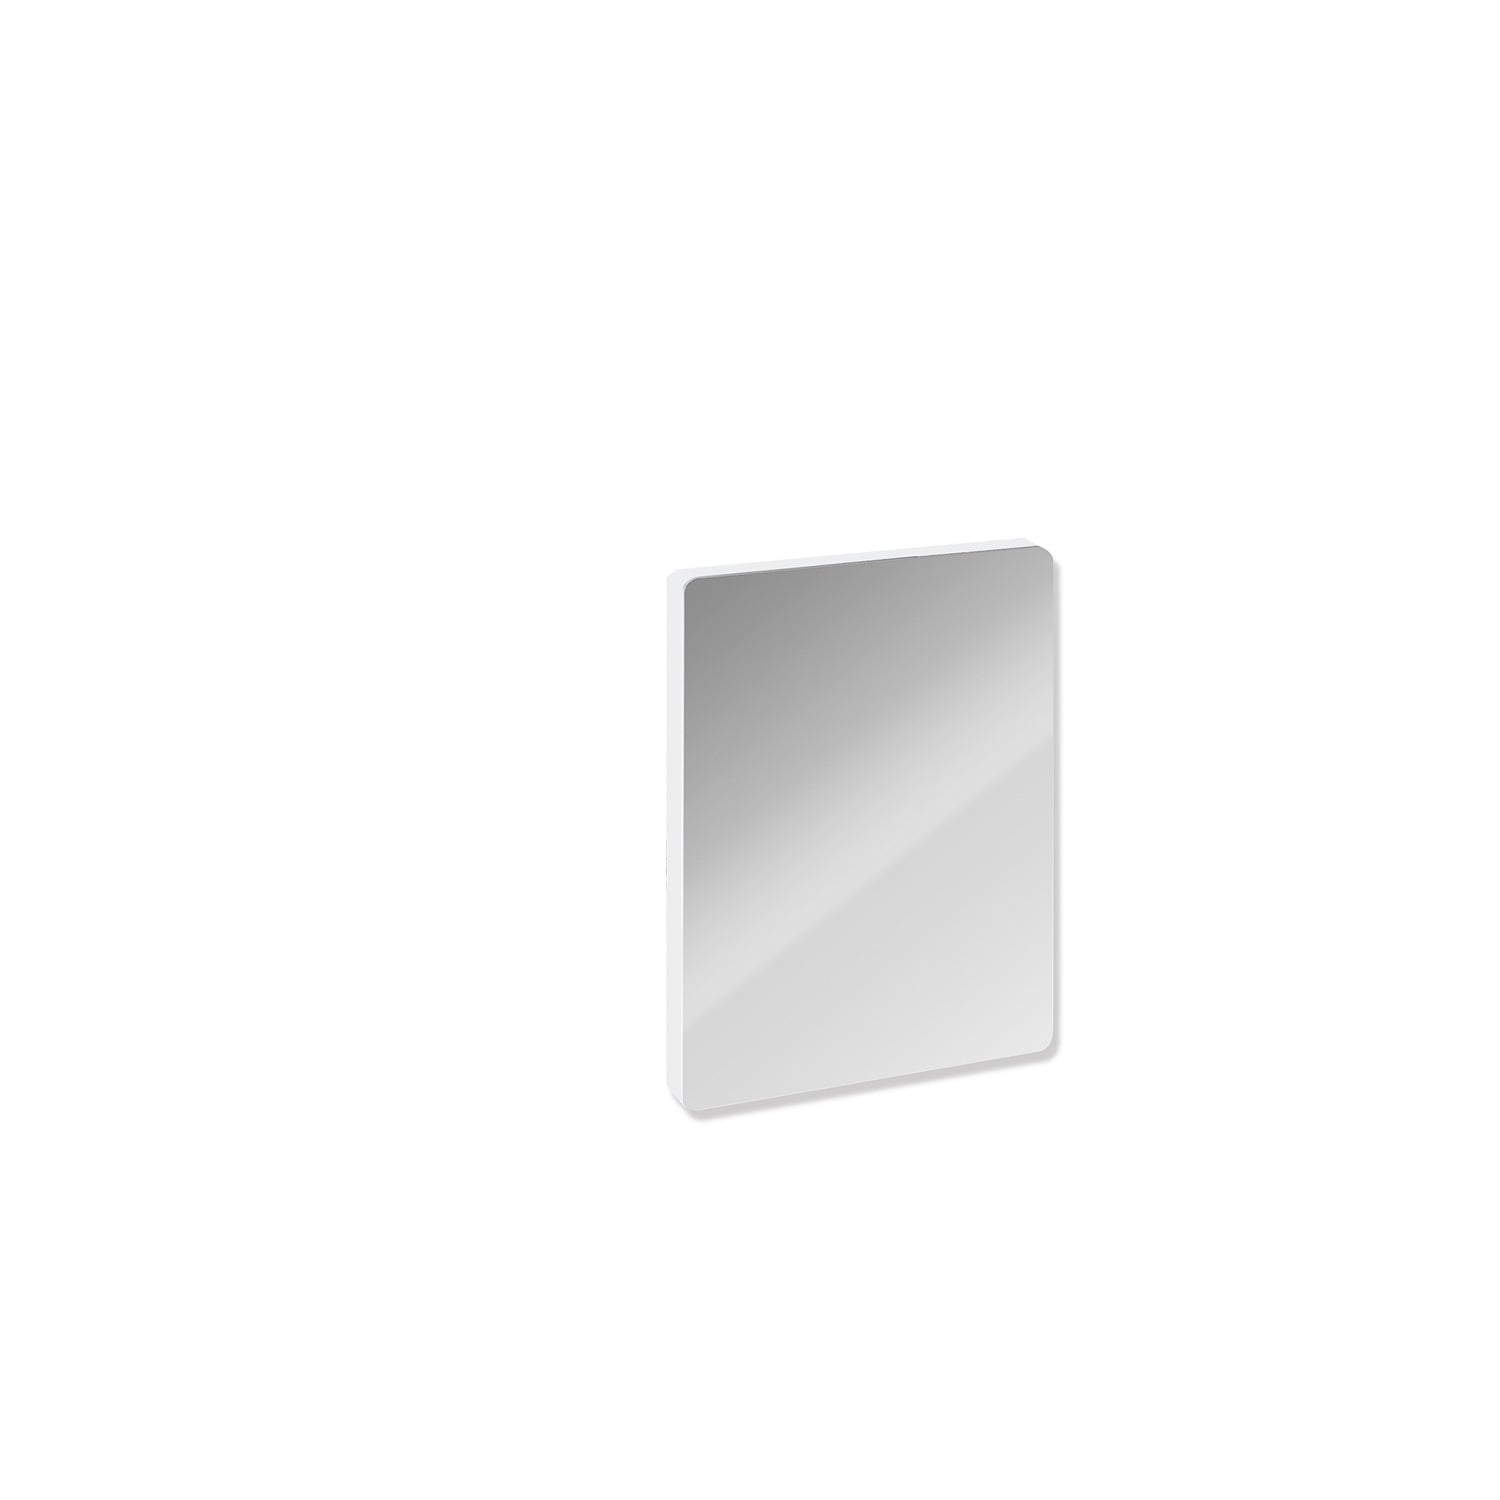 Circula Removable Hinged Grab Rail Cover with a chrome finish on a white background